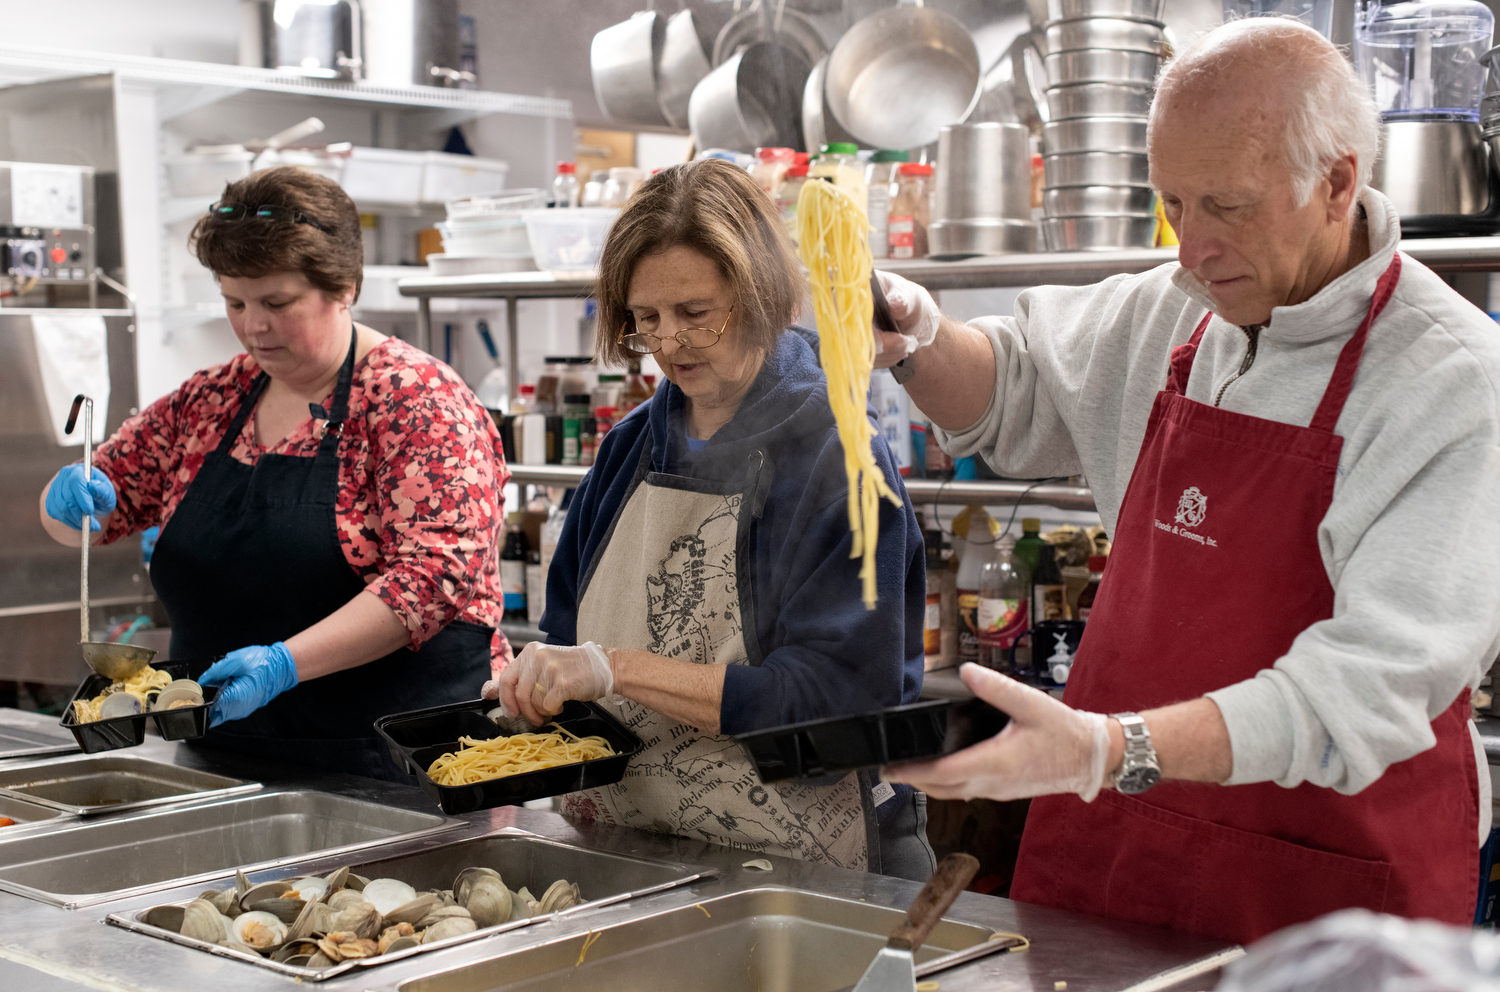 HYANNIS - Faith Family Kitchen volunteers George and Glenna Cappola and Donna Vashon serve up a true New England supper on Friday, April 3, 2020. A donation from SPAT featured Holbrook littlenecks over butter garlic pasta.